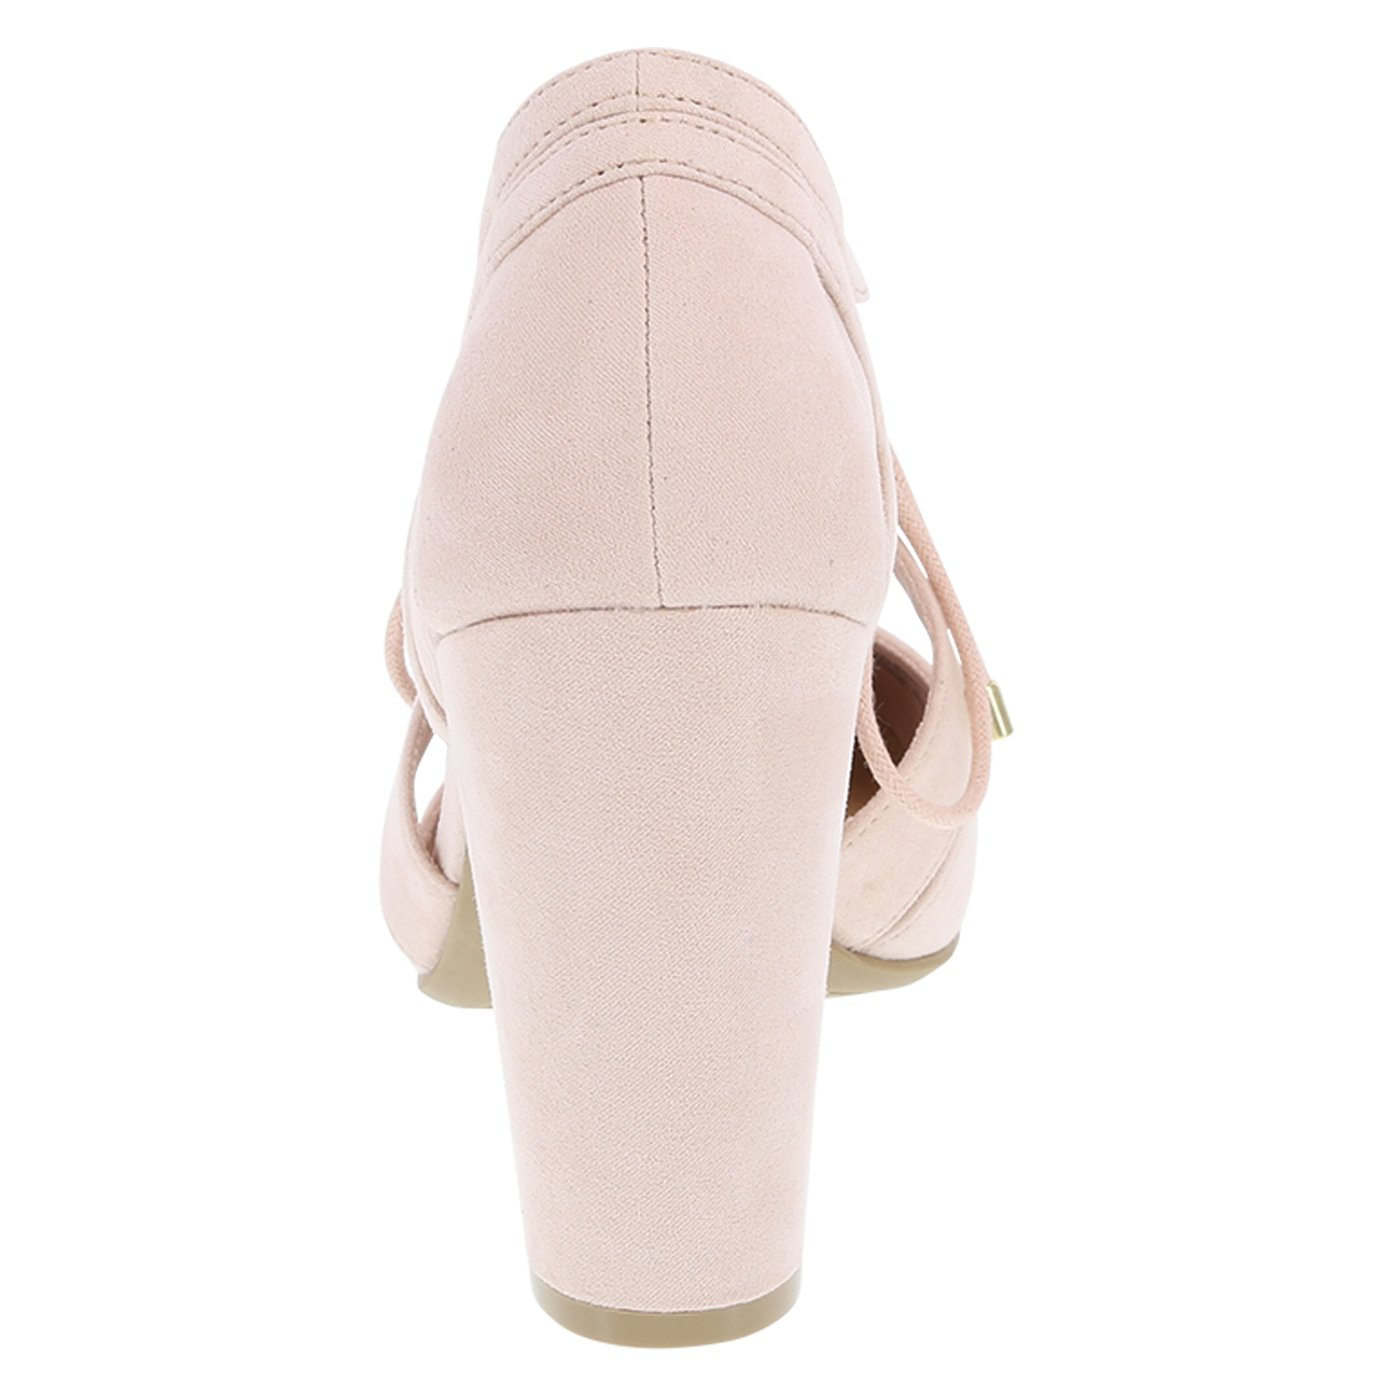 f54476ab9b20 Christian Siriano for Payless Women s Light Pink Suede Kami Ghillie Block  Heel 7.5 Wide  Amazon.com.au  Fashion